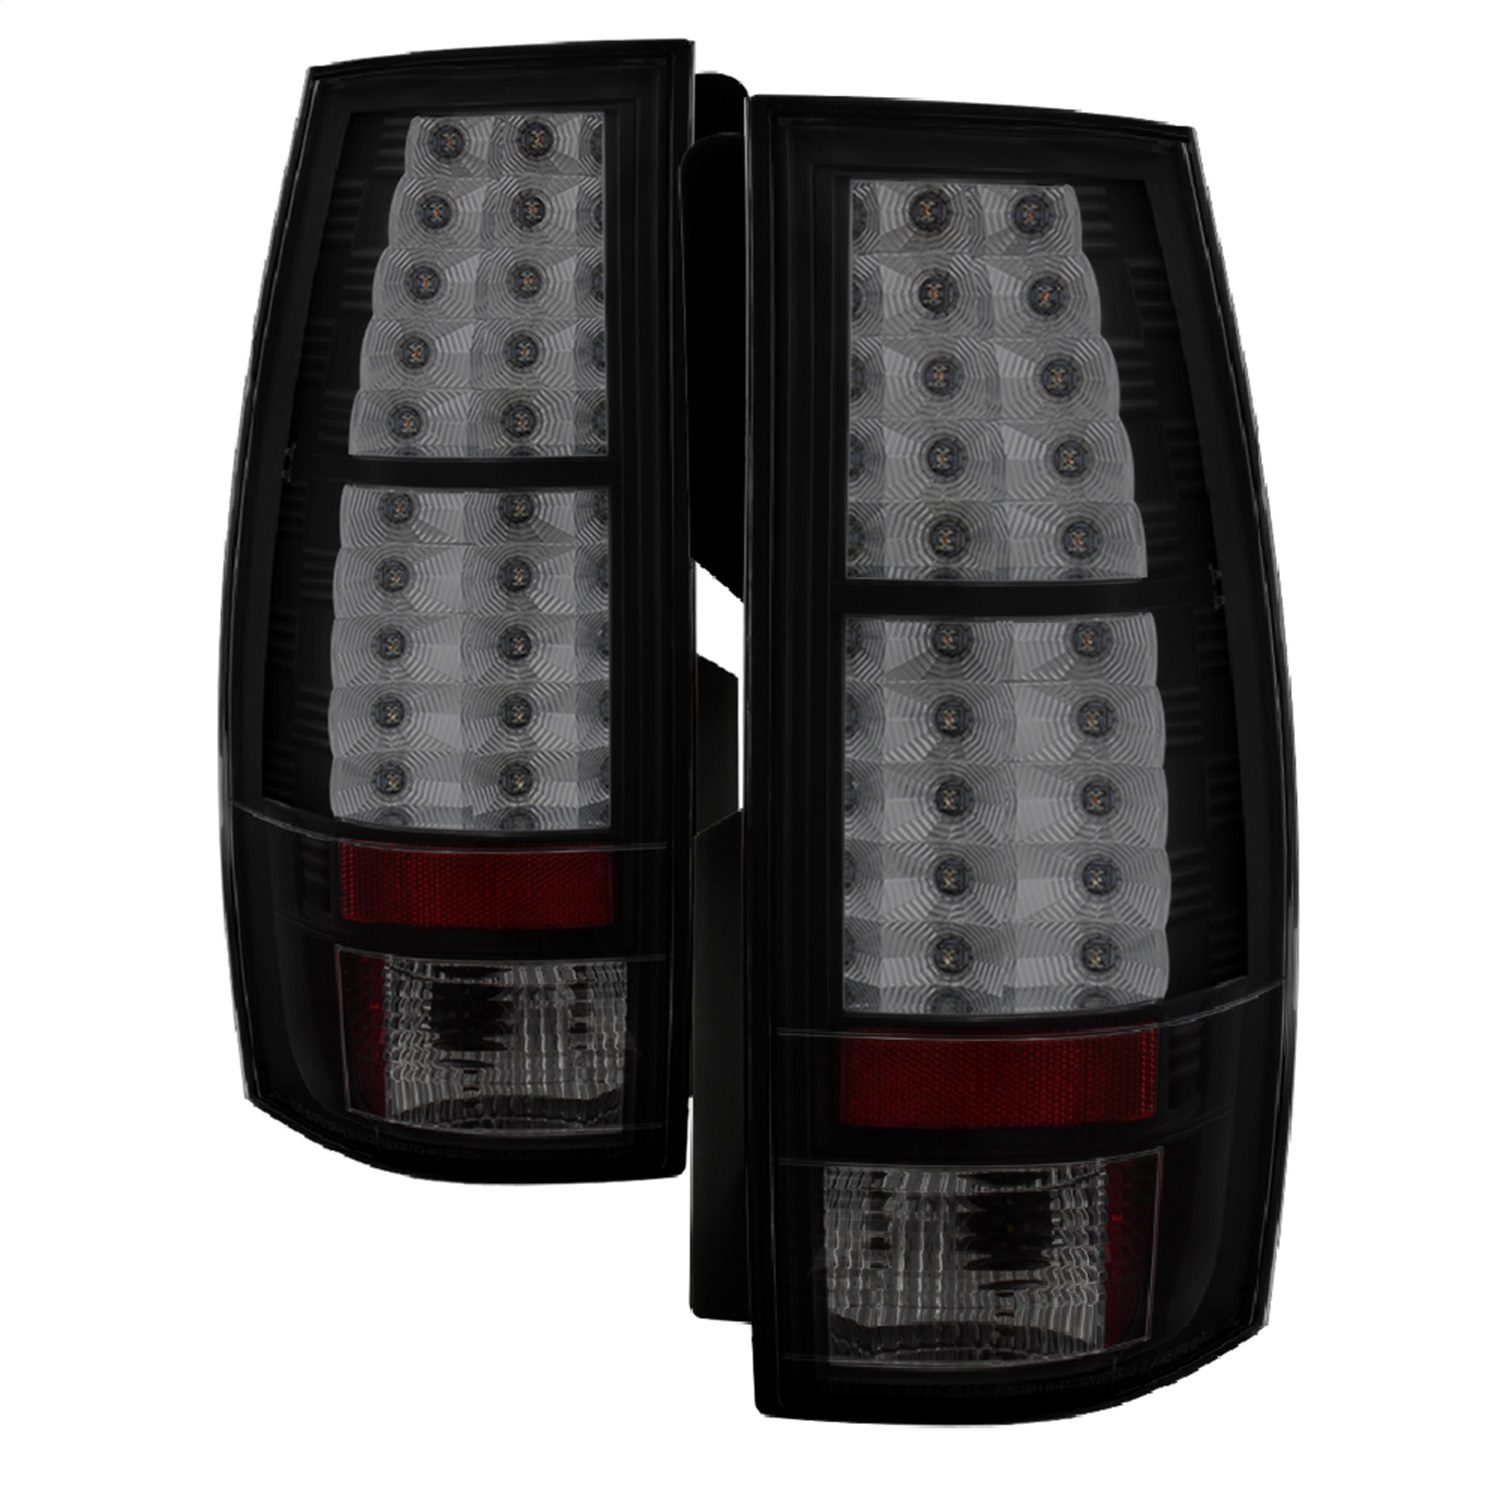 Spyder Auto 5078087 LED Tail Lights Fits Suburban 1500 Suburban 2500 Tahoe Yukon